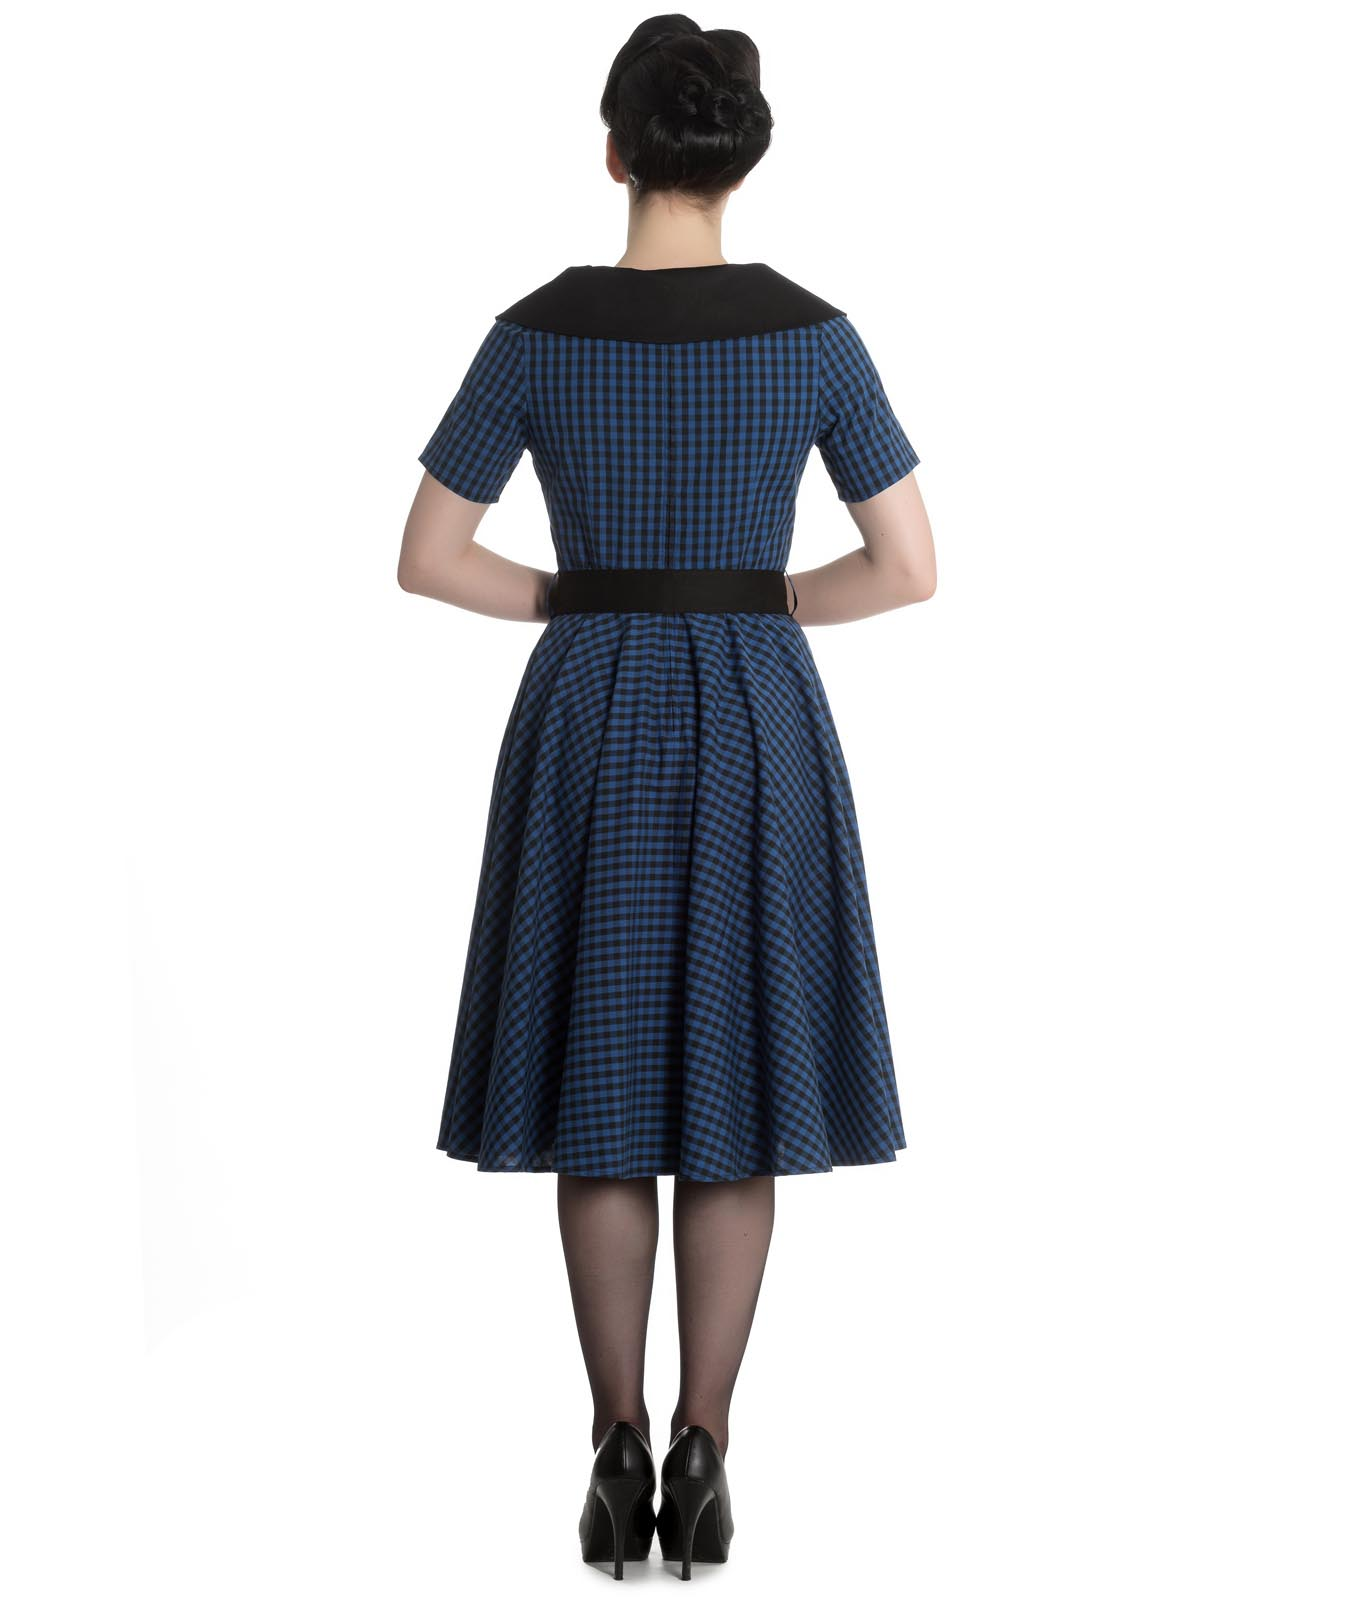 Hell-Bunny-40s-50s-Pin-Up-Swing-Dress-Black-Navy-BRIDGET-Gingham-All-Sizes thumbnail 5